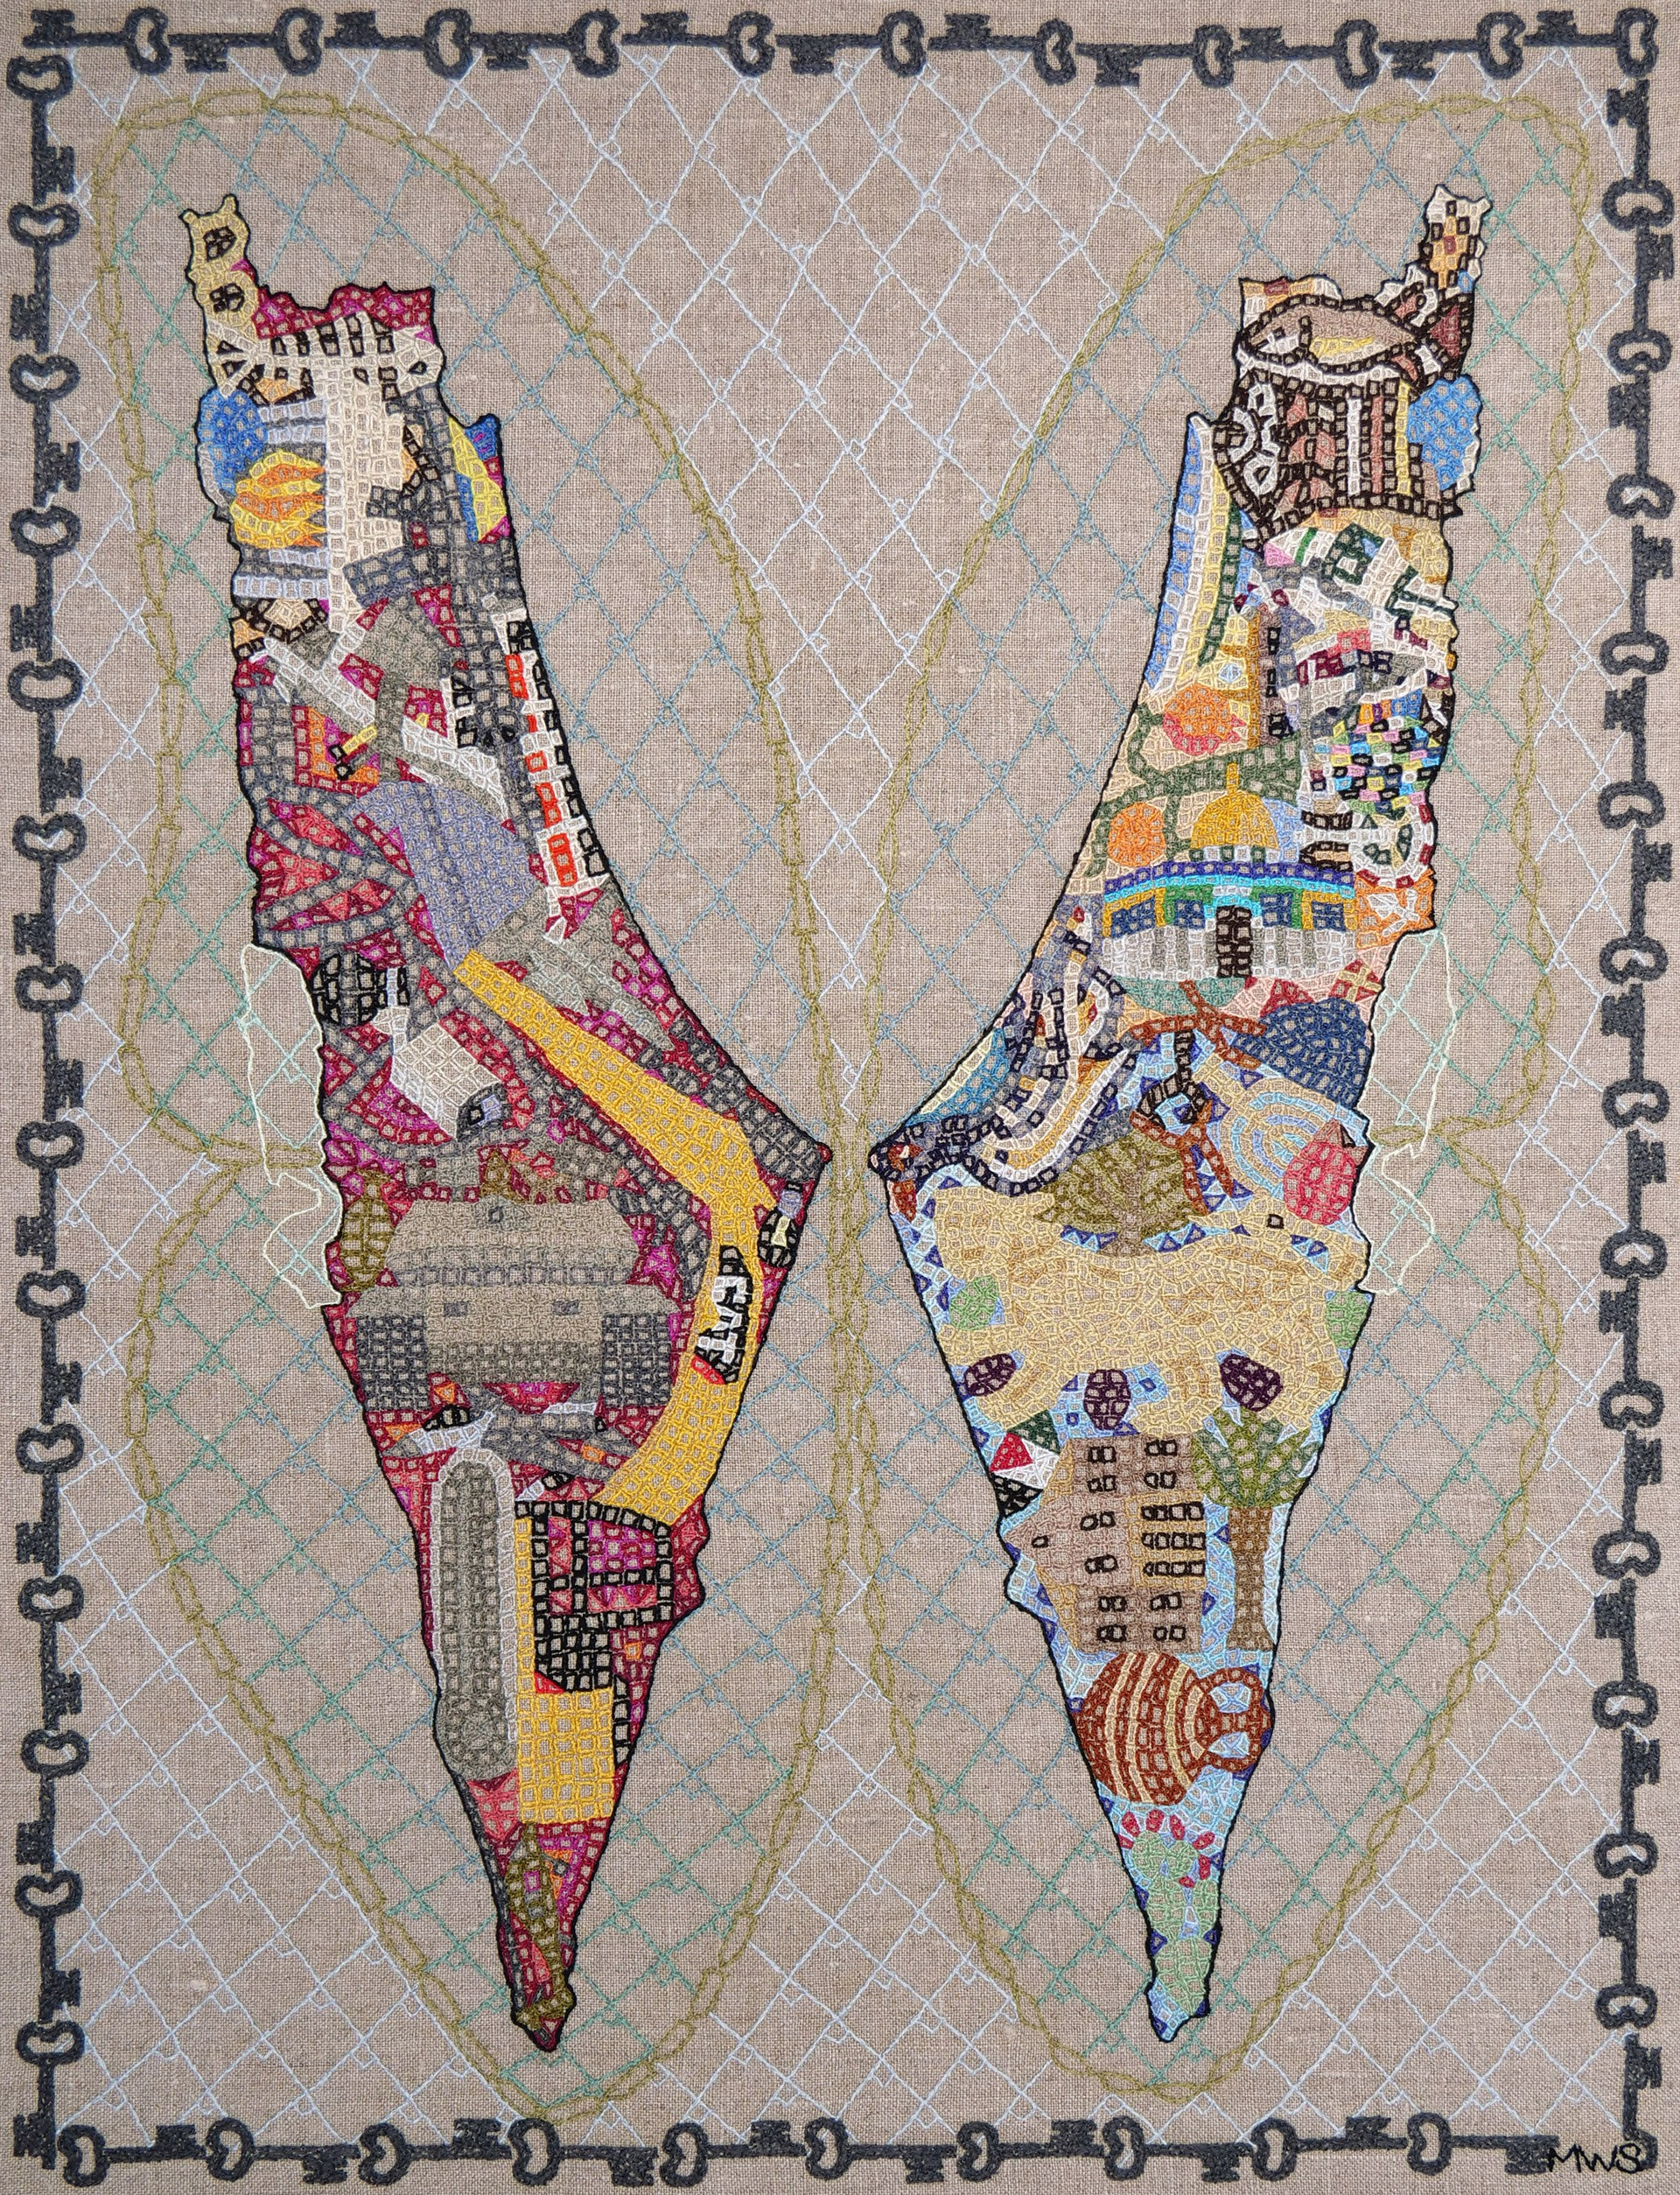 I See Palestine Apart - Hide (This) Map by Martha Shade